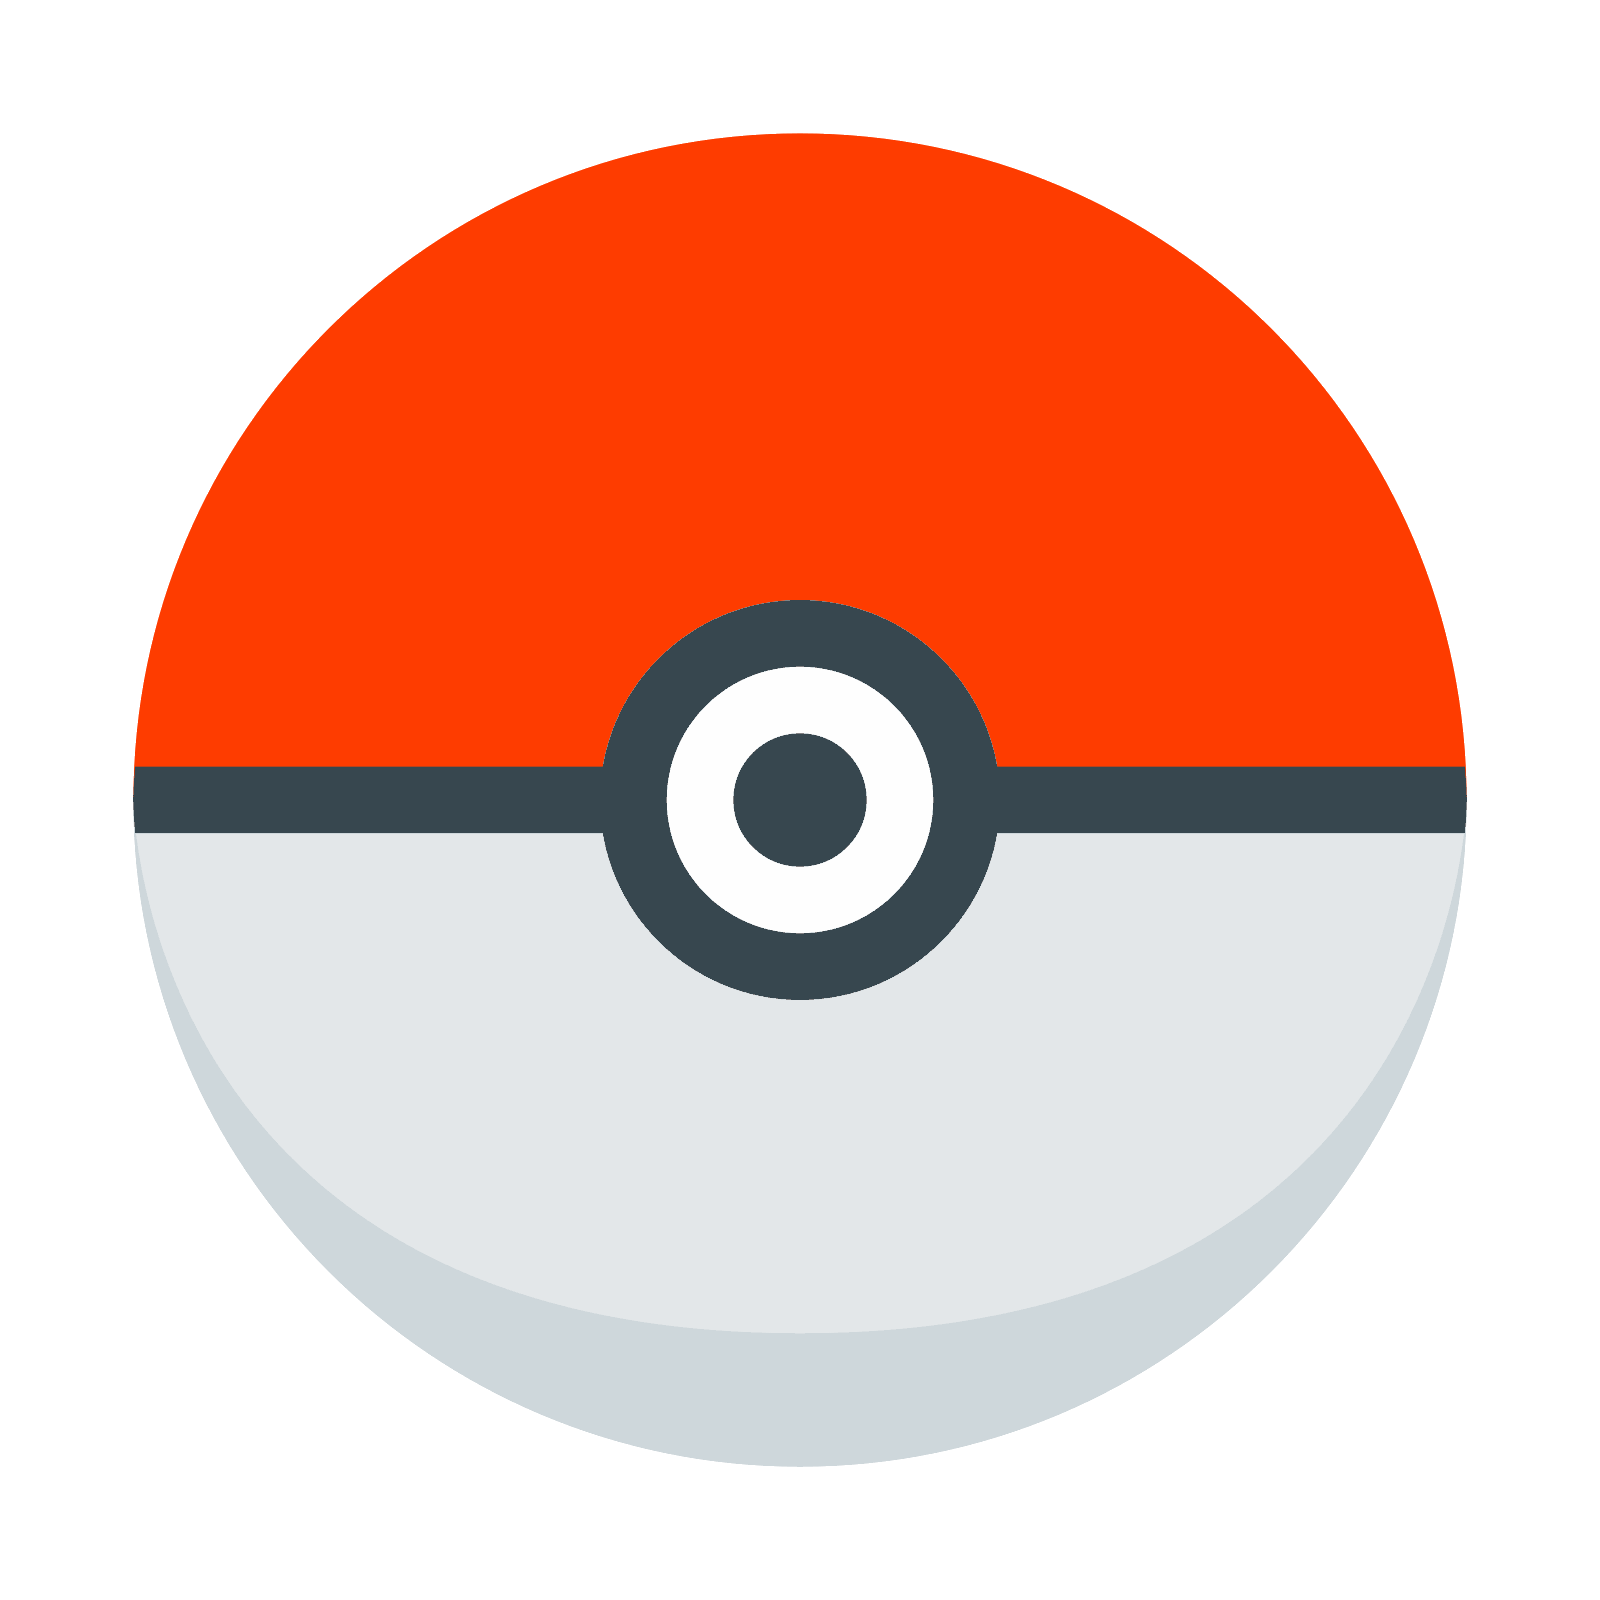 Pokeball png. Icon free download and